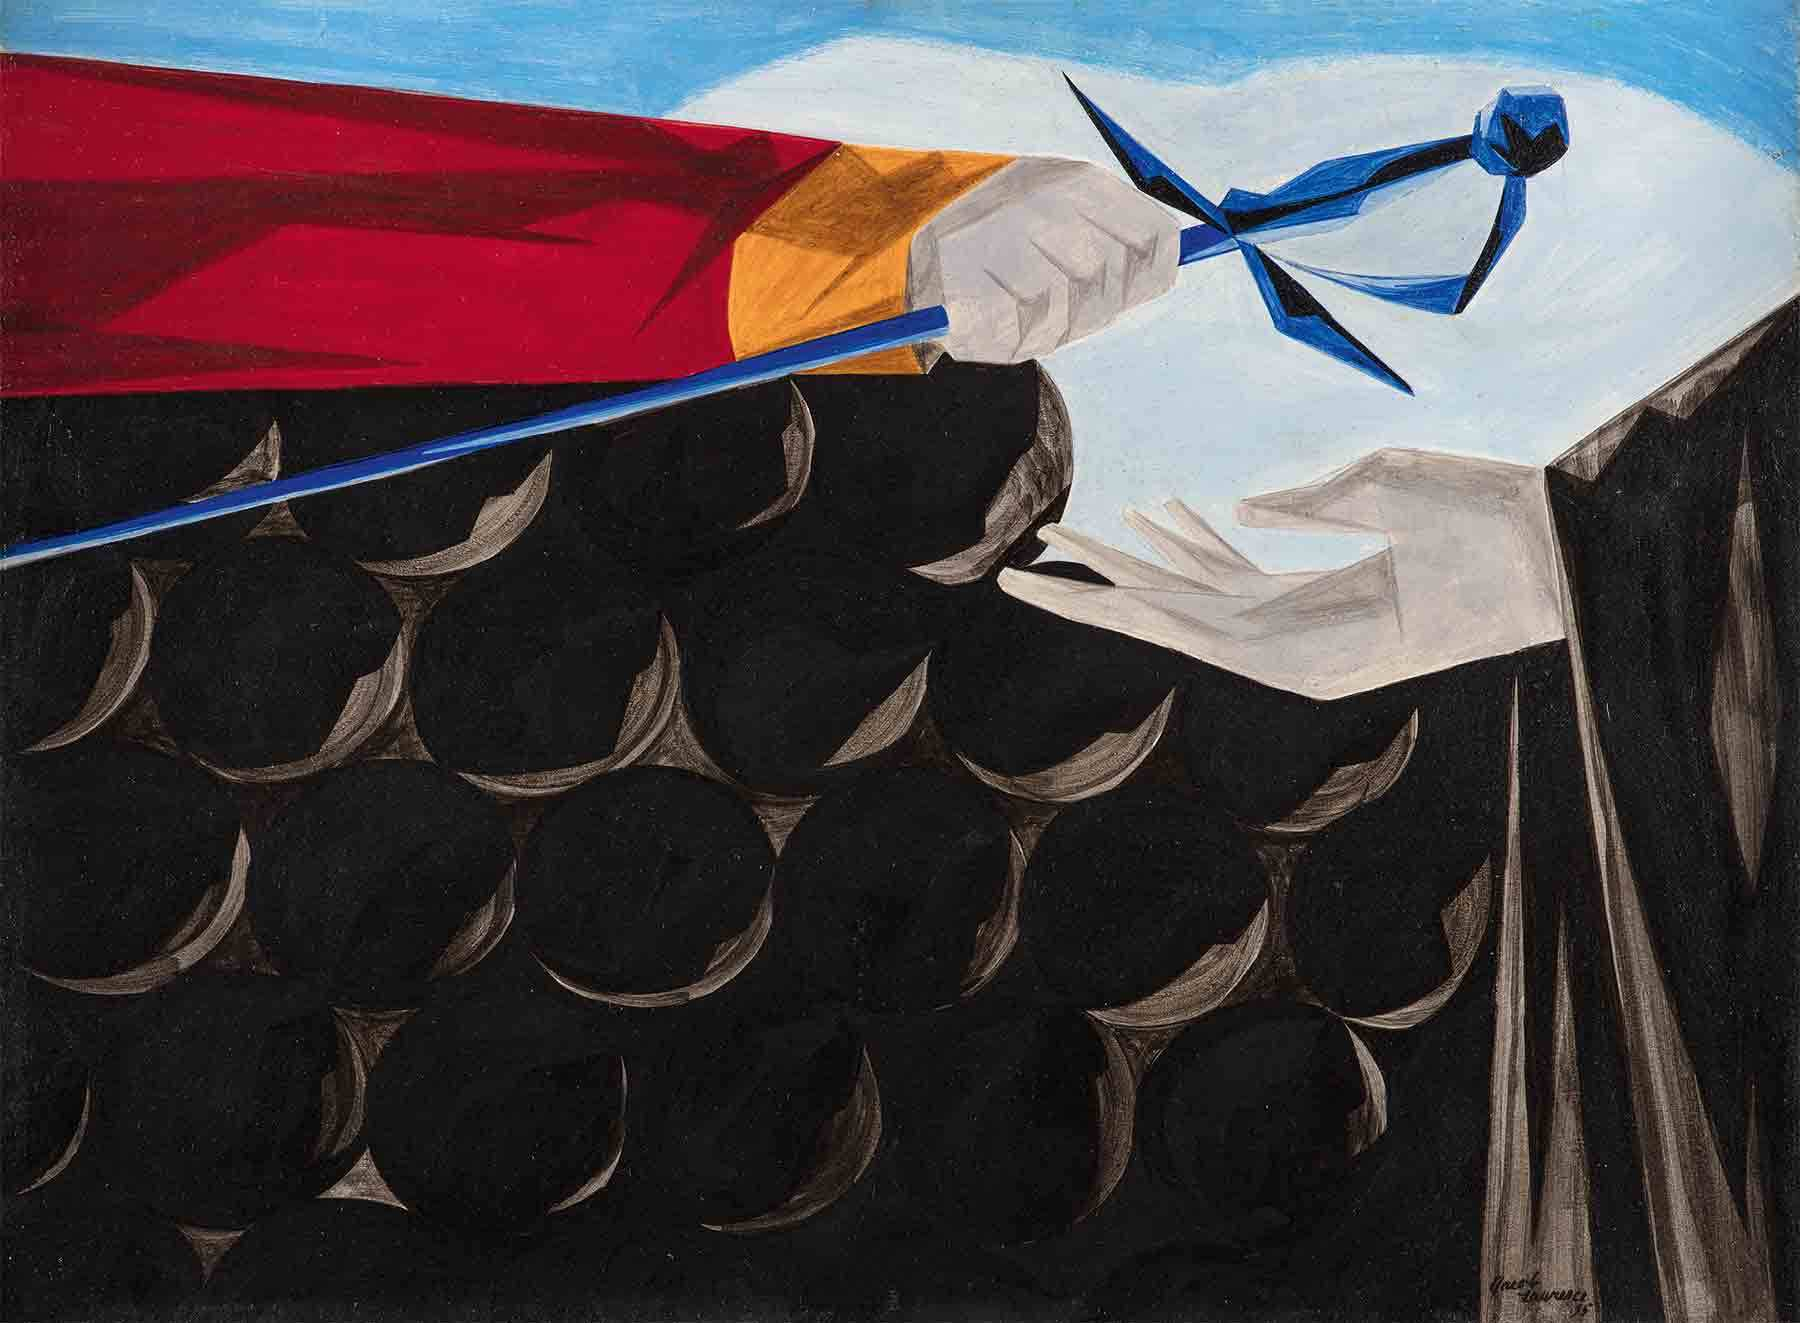 Jacob Lawrence, Victory and Defeat, Panel 13, 1955, from Struggle: From the History of the American People, 1954–56,